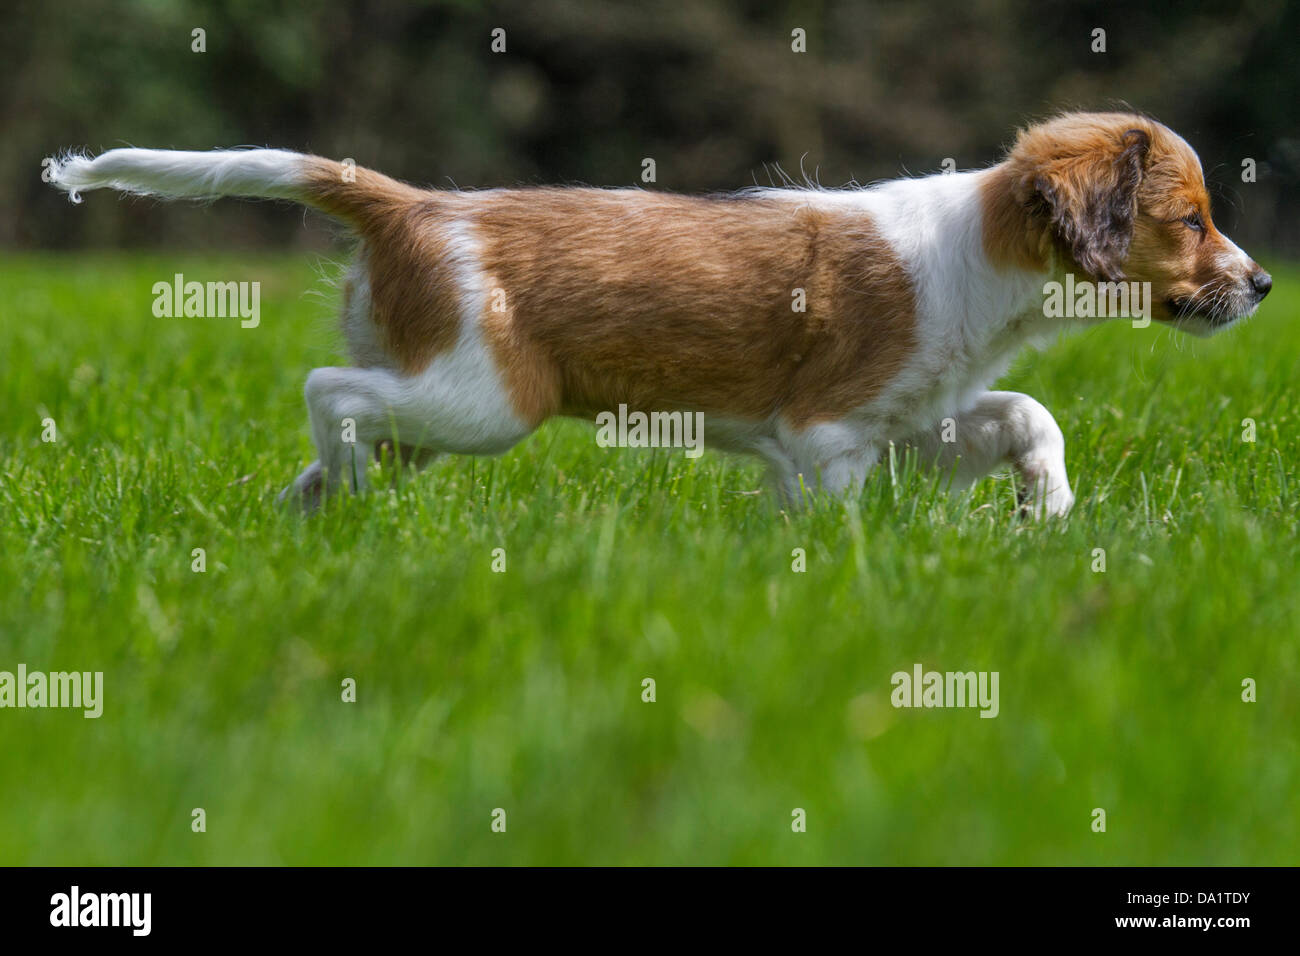 Kooikerhondje / Kooiker Hound (Canis lupus familiaris), used for duck hunting, in garden, Netherlands - Stock Image